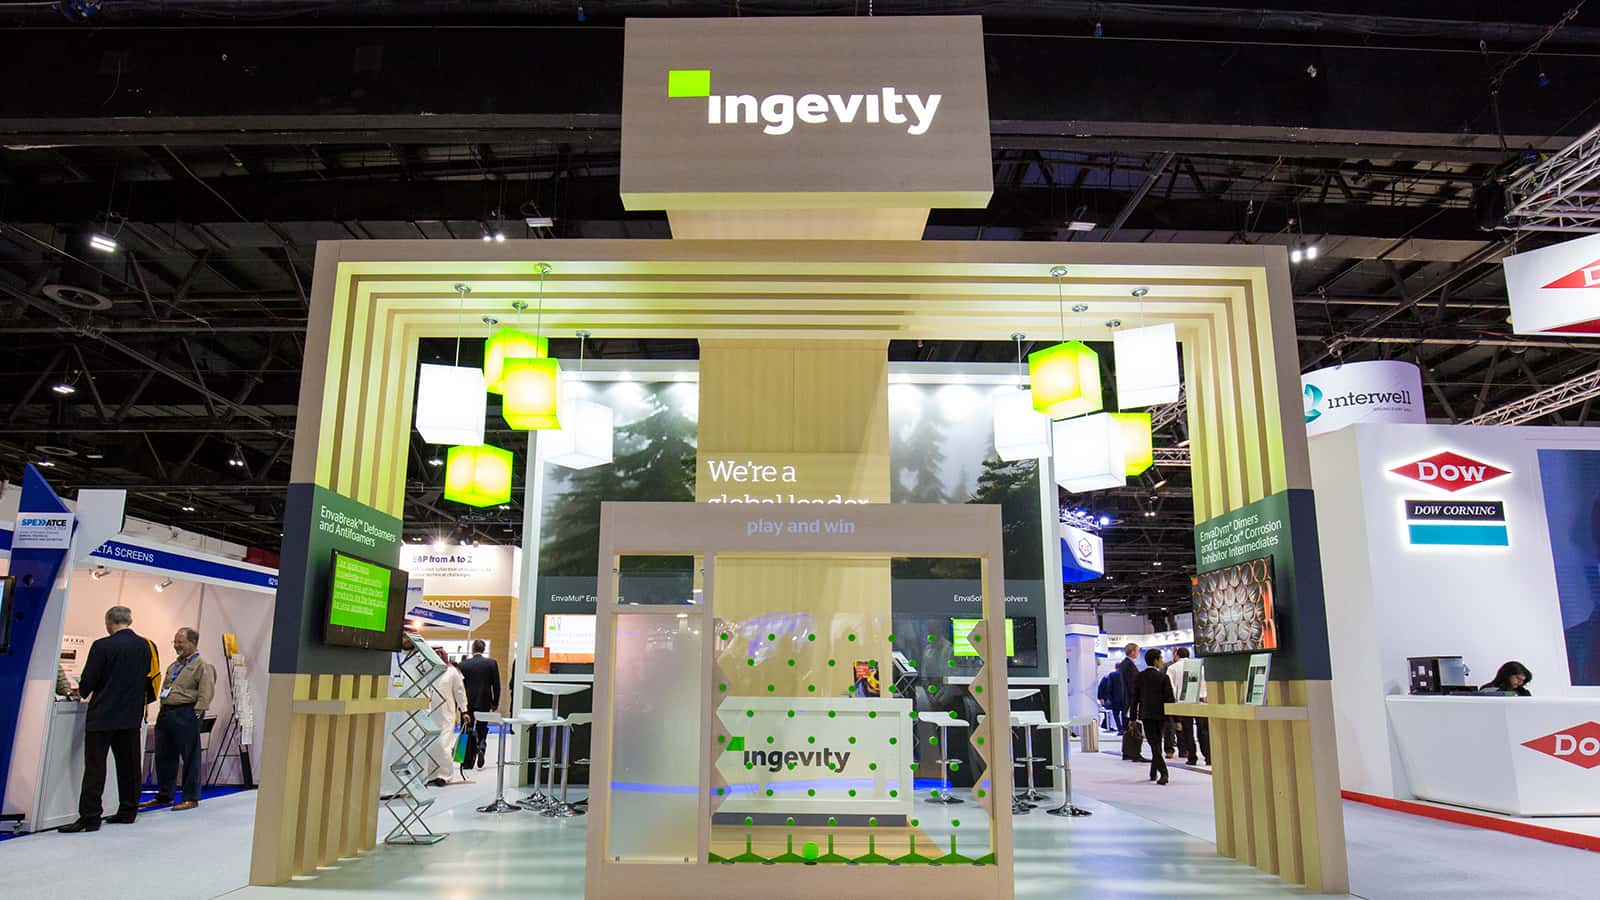 Front view of Ingevity SPE ATCE experience 2016.